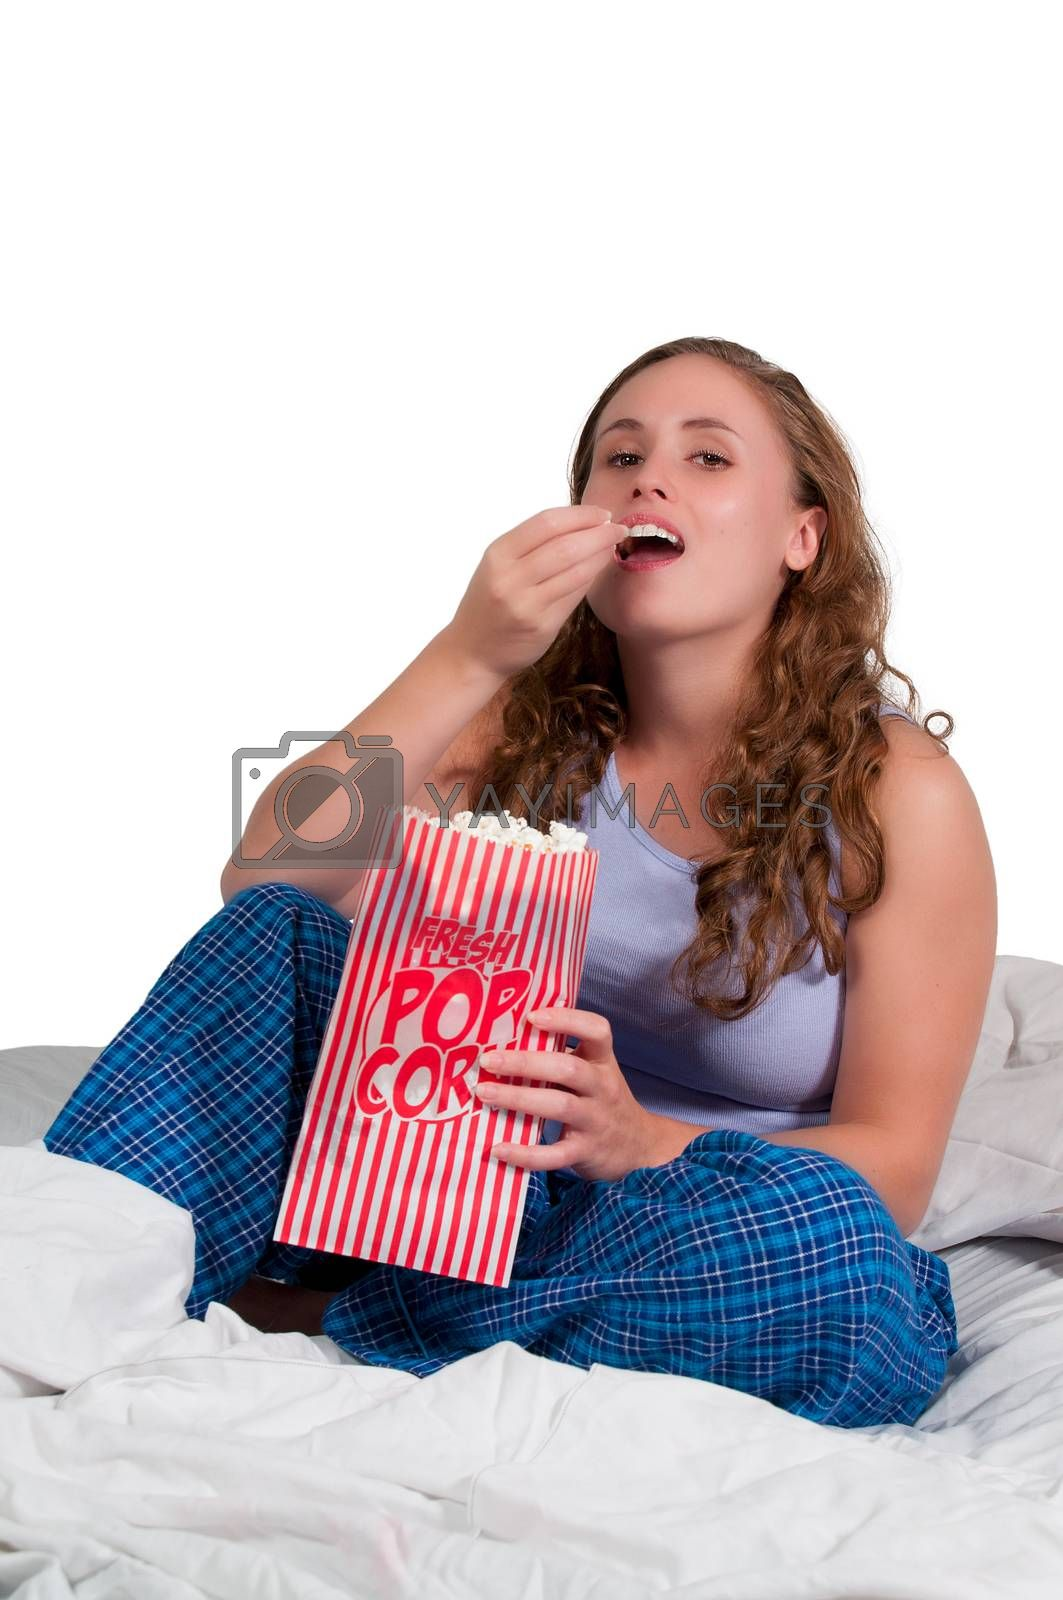 Beautiful young woman eating popcorn in bed